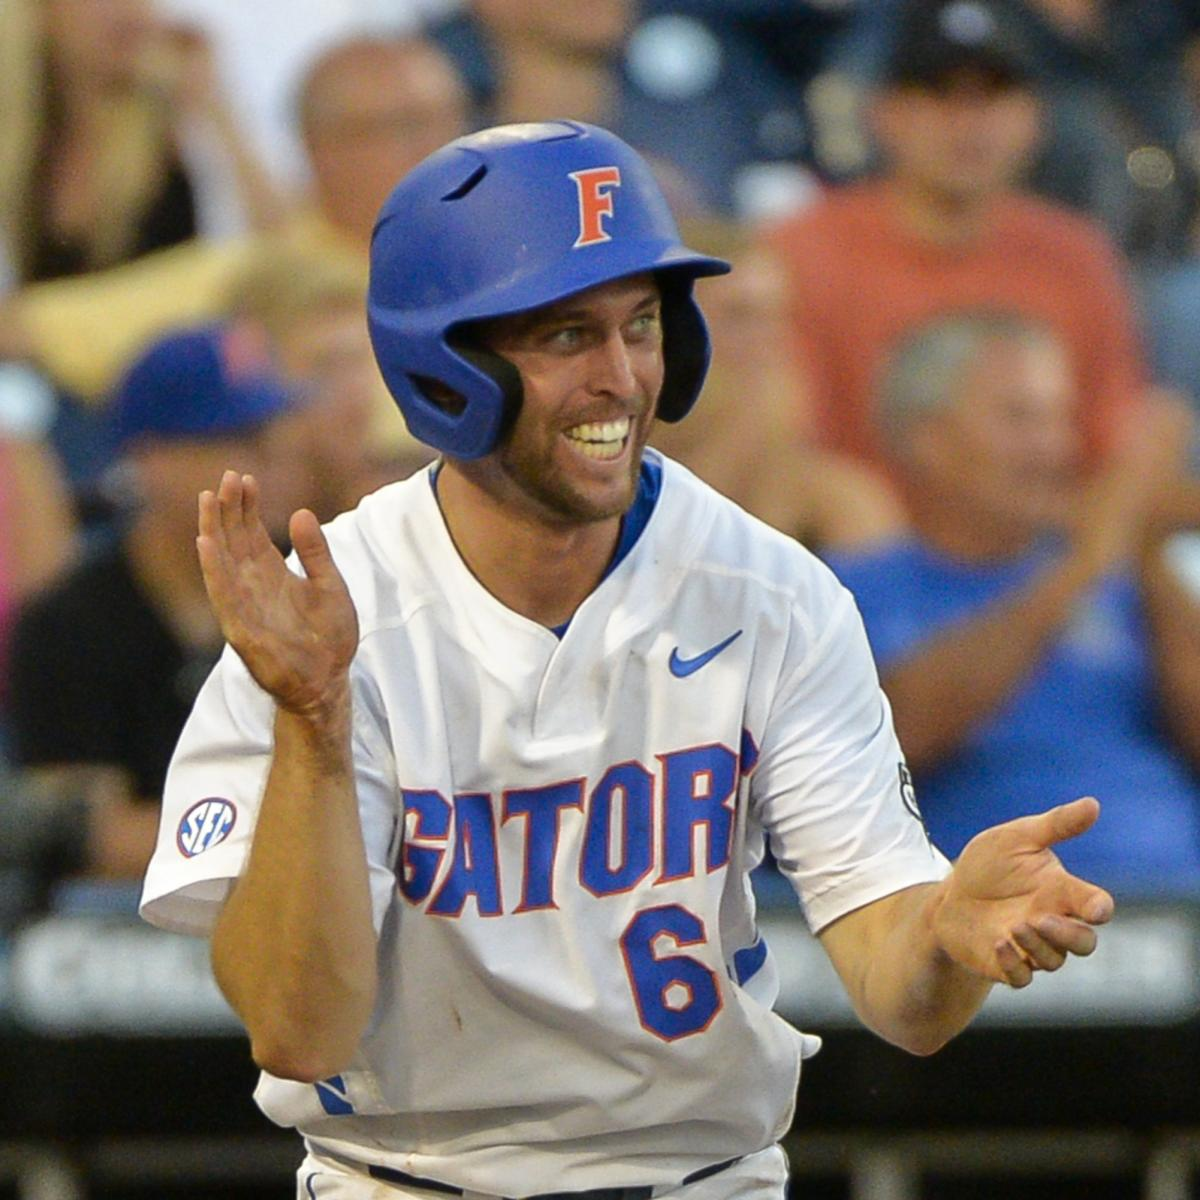 SEC Baseball Tournament 2017: Friday Schedule and Bracket ...